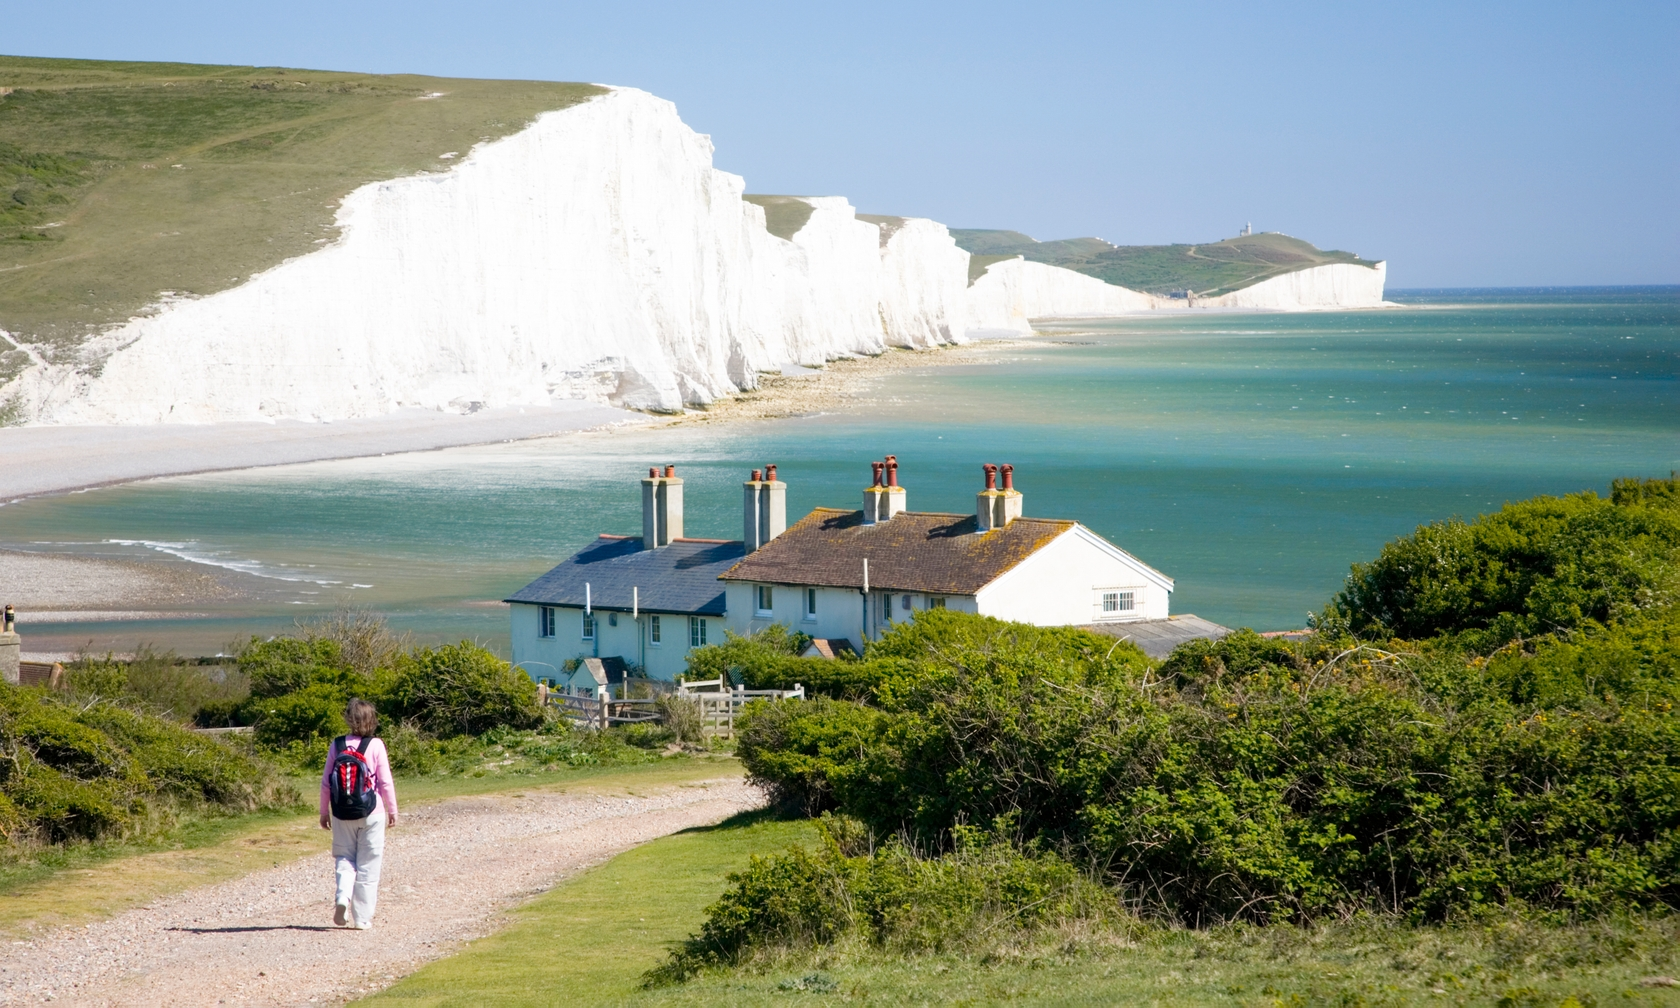 Holiday rentals in East Sussex